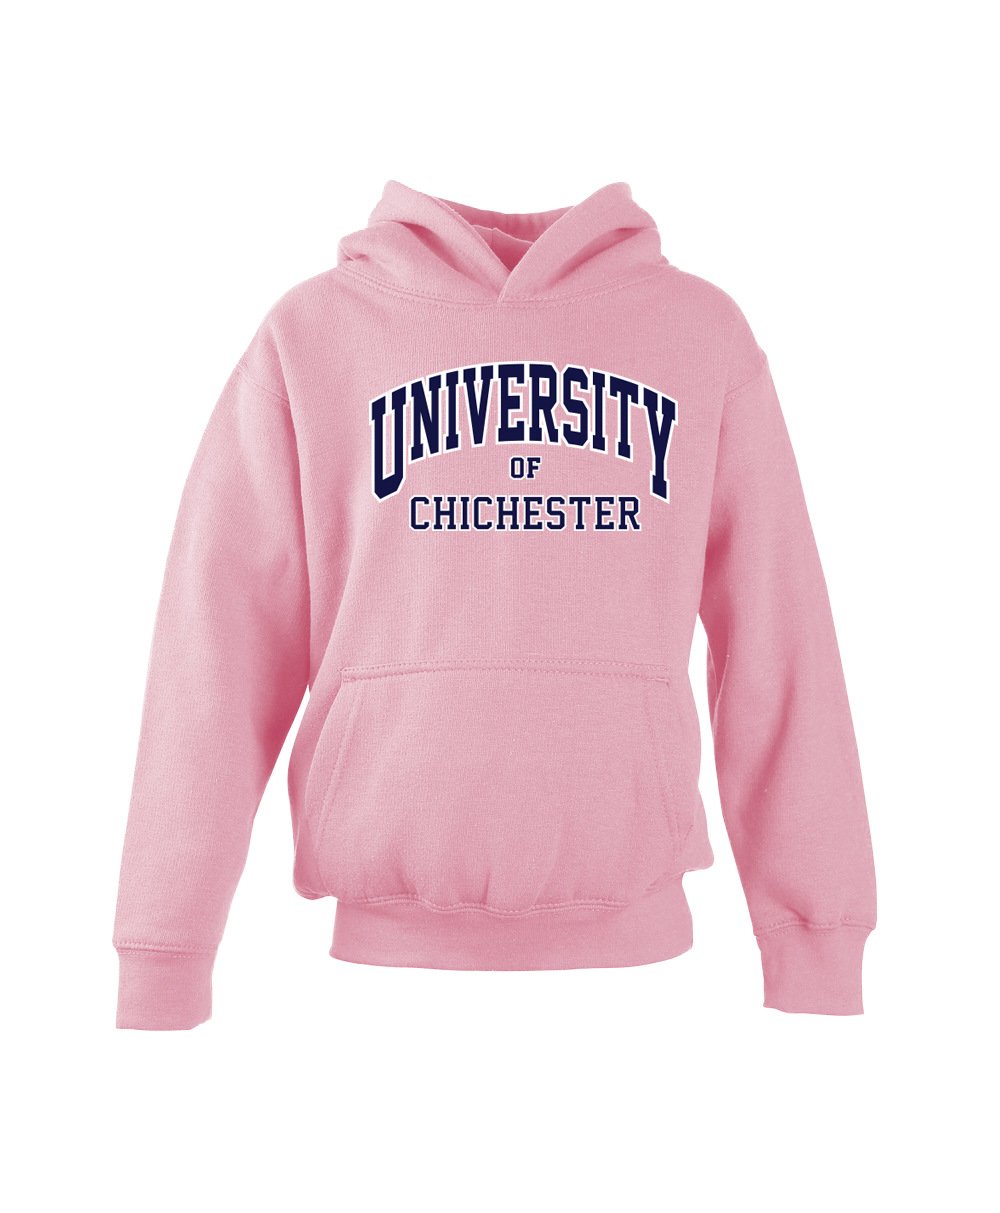 W72k-2001-Chichester University  Kids Heavyweight Hooded Top